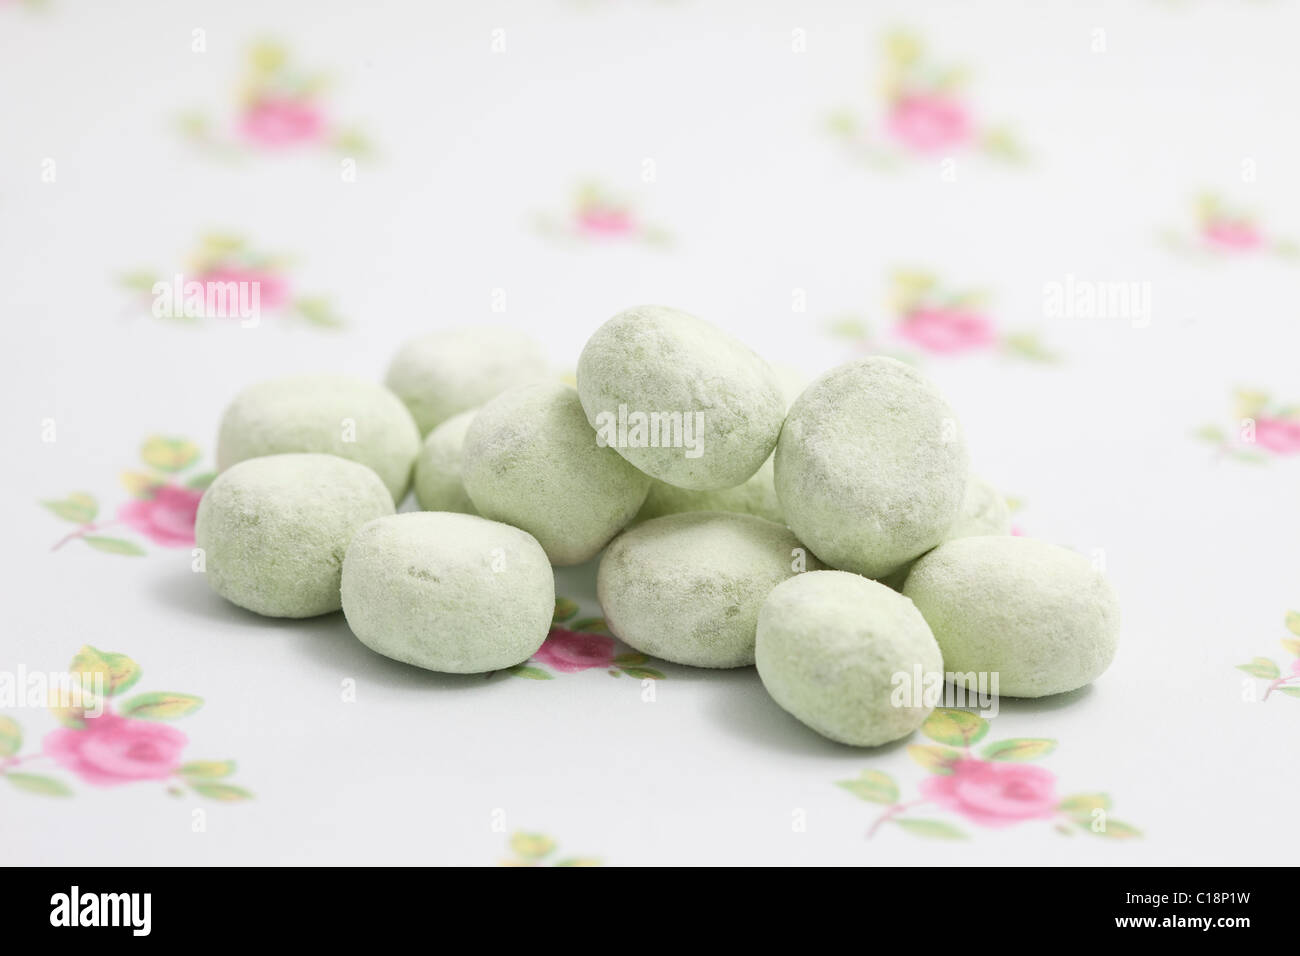 apple bonbons sweets and candy on a paper background photographed in a studio - Stock Image